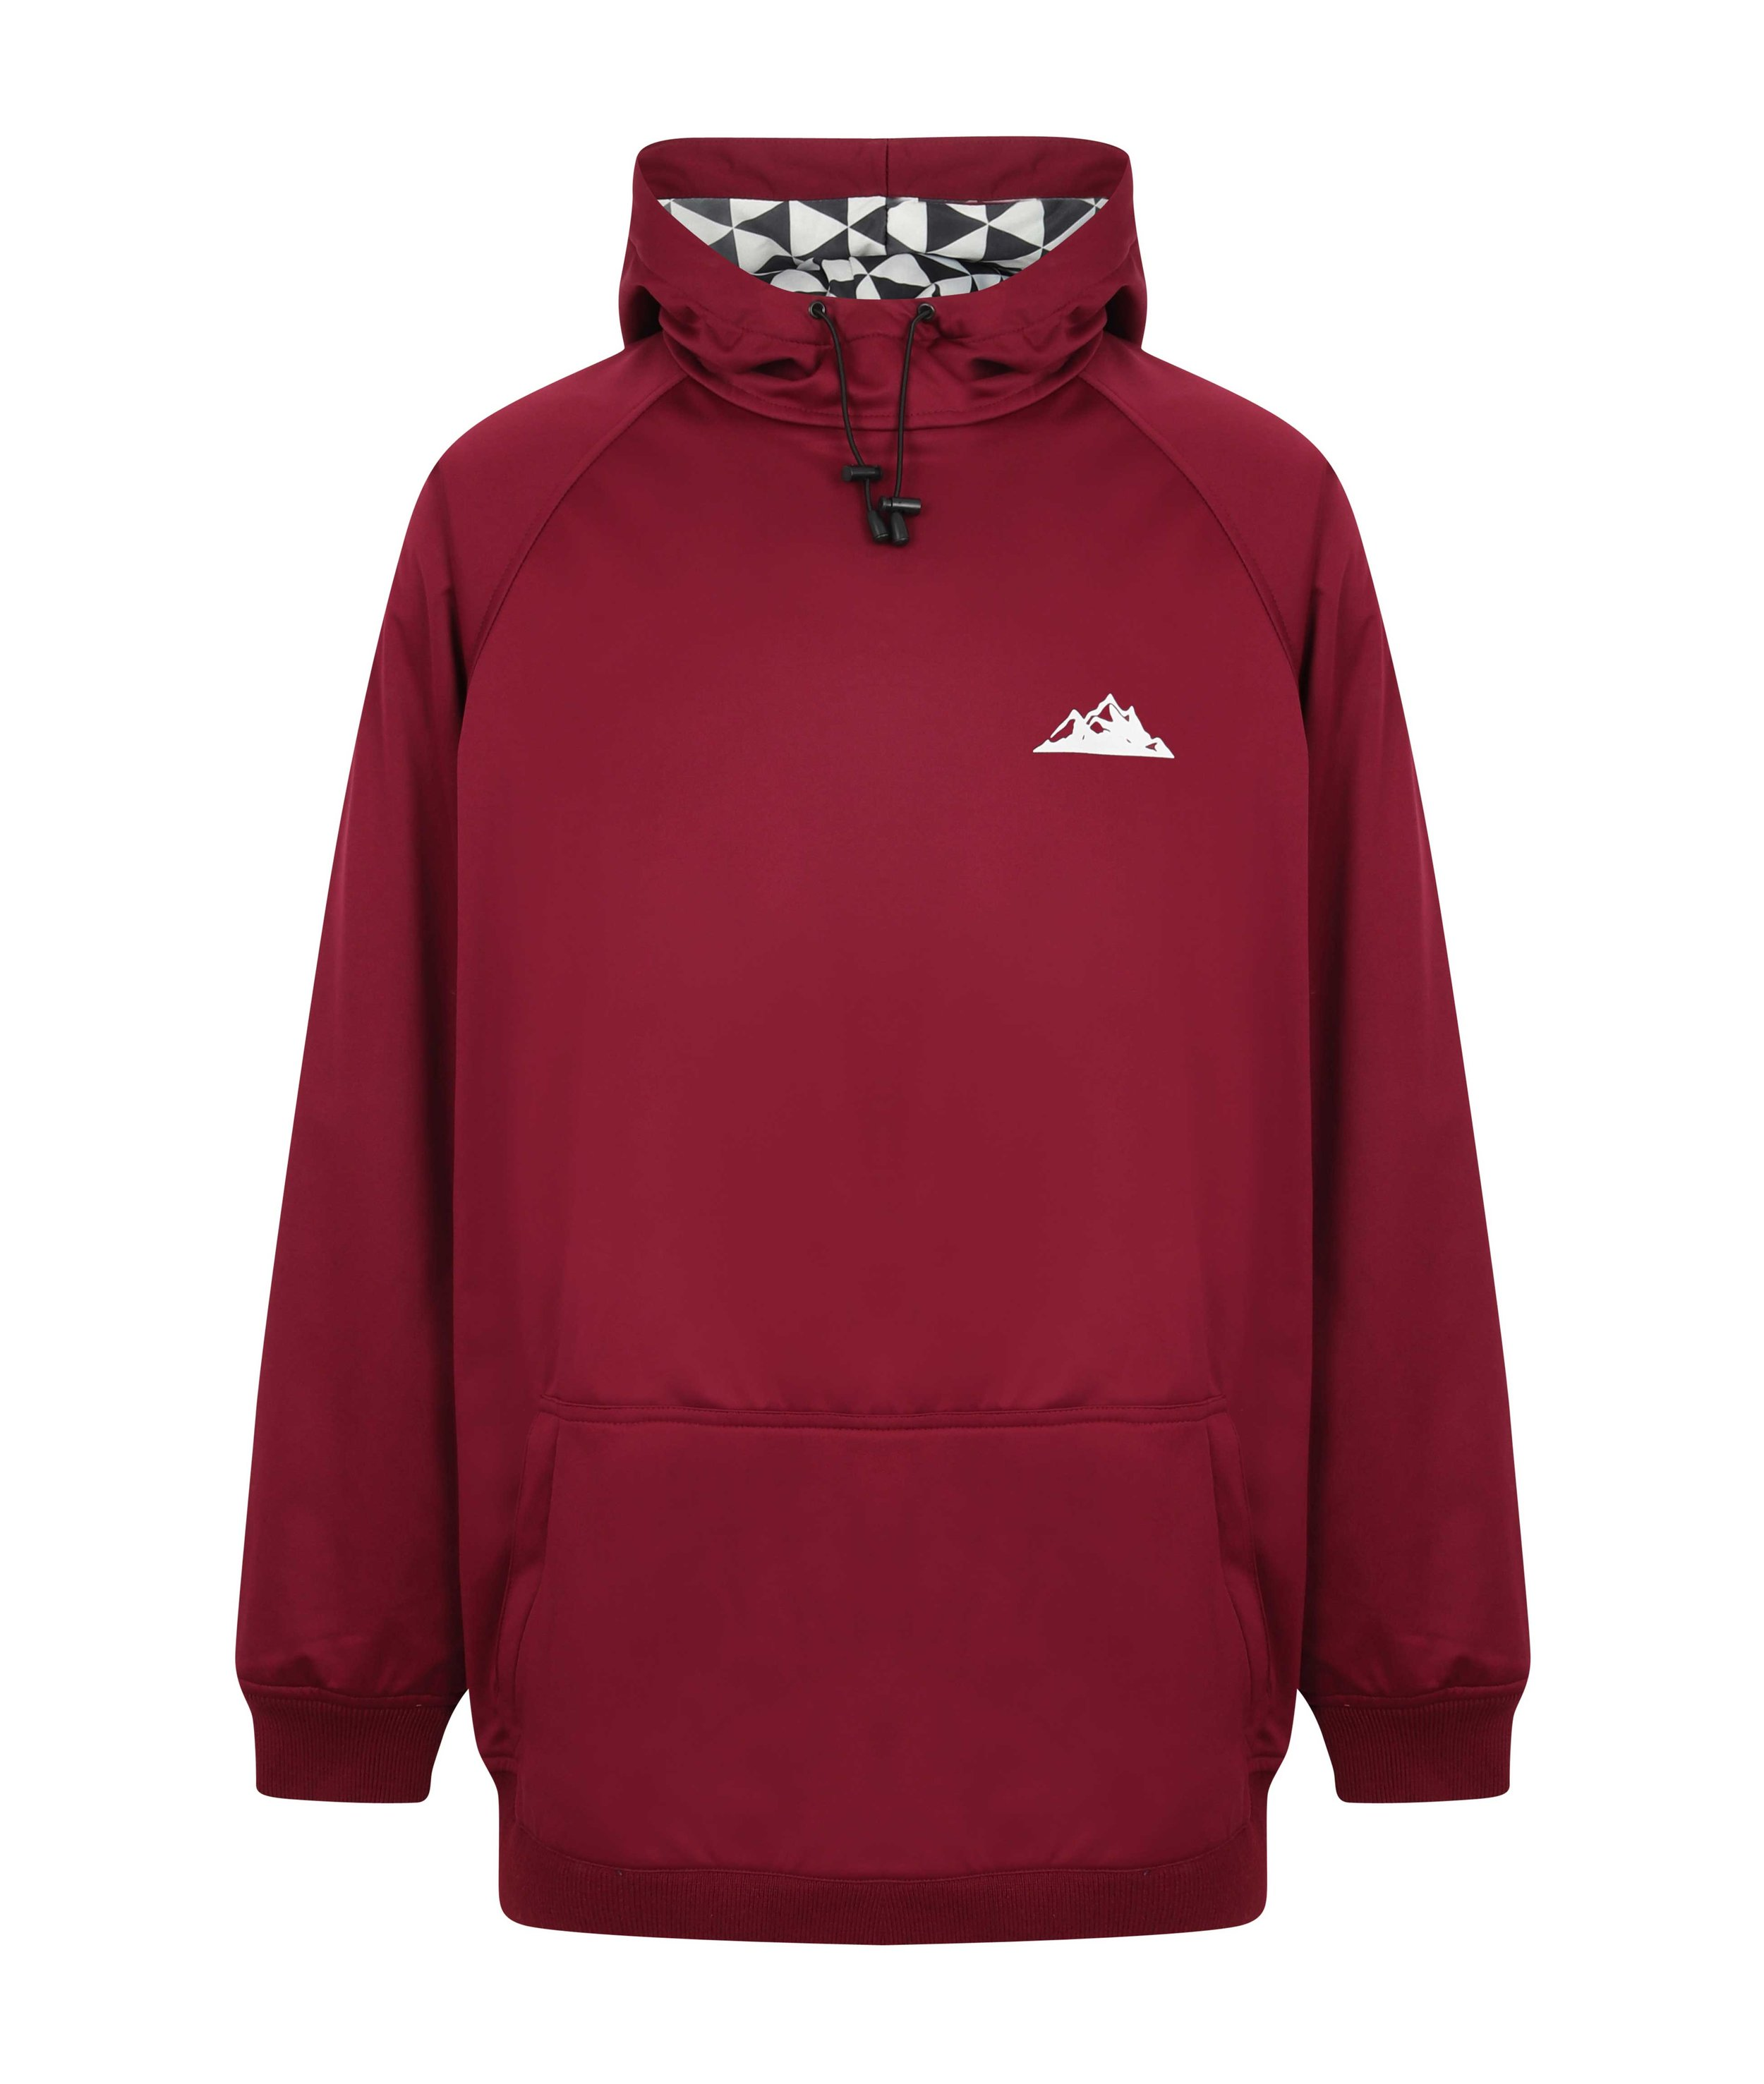 THE FLO 2.0 - TECHNICAL HOODIE